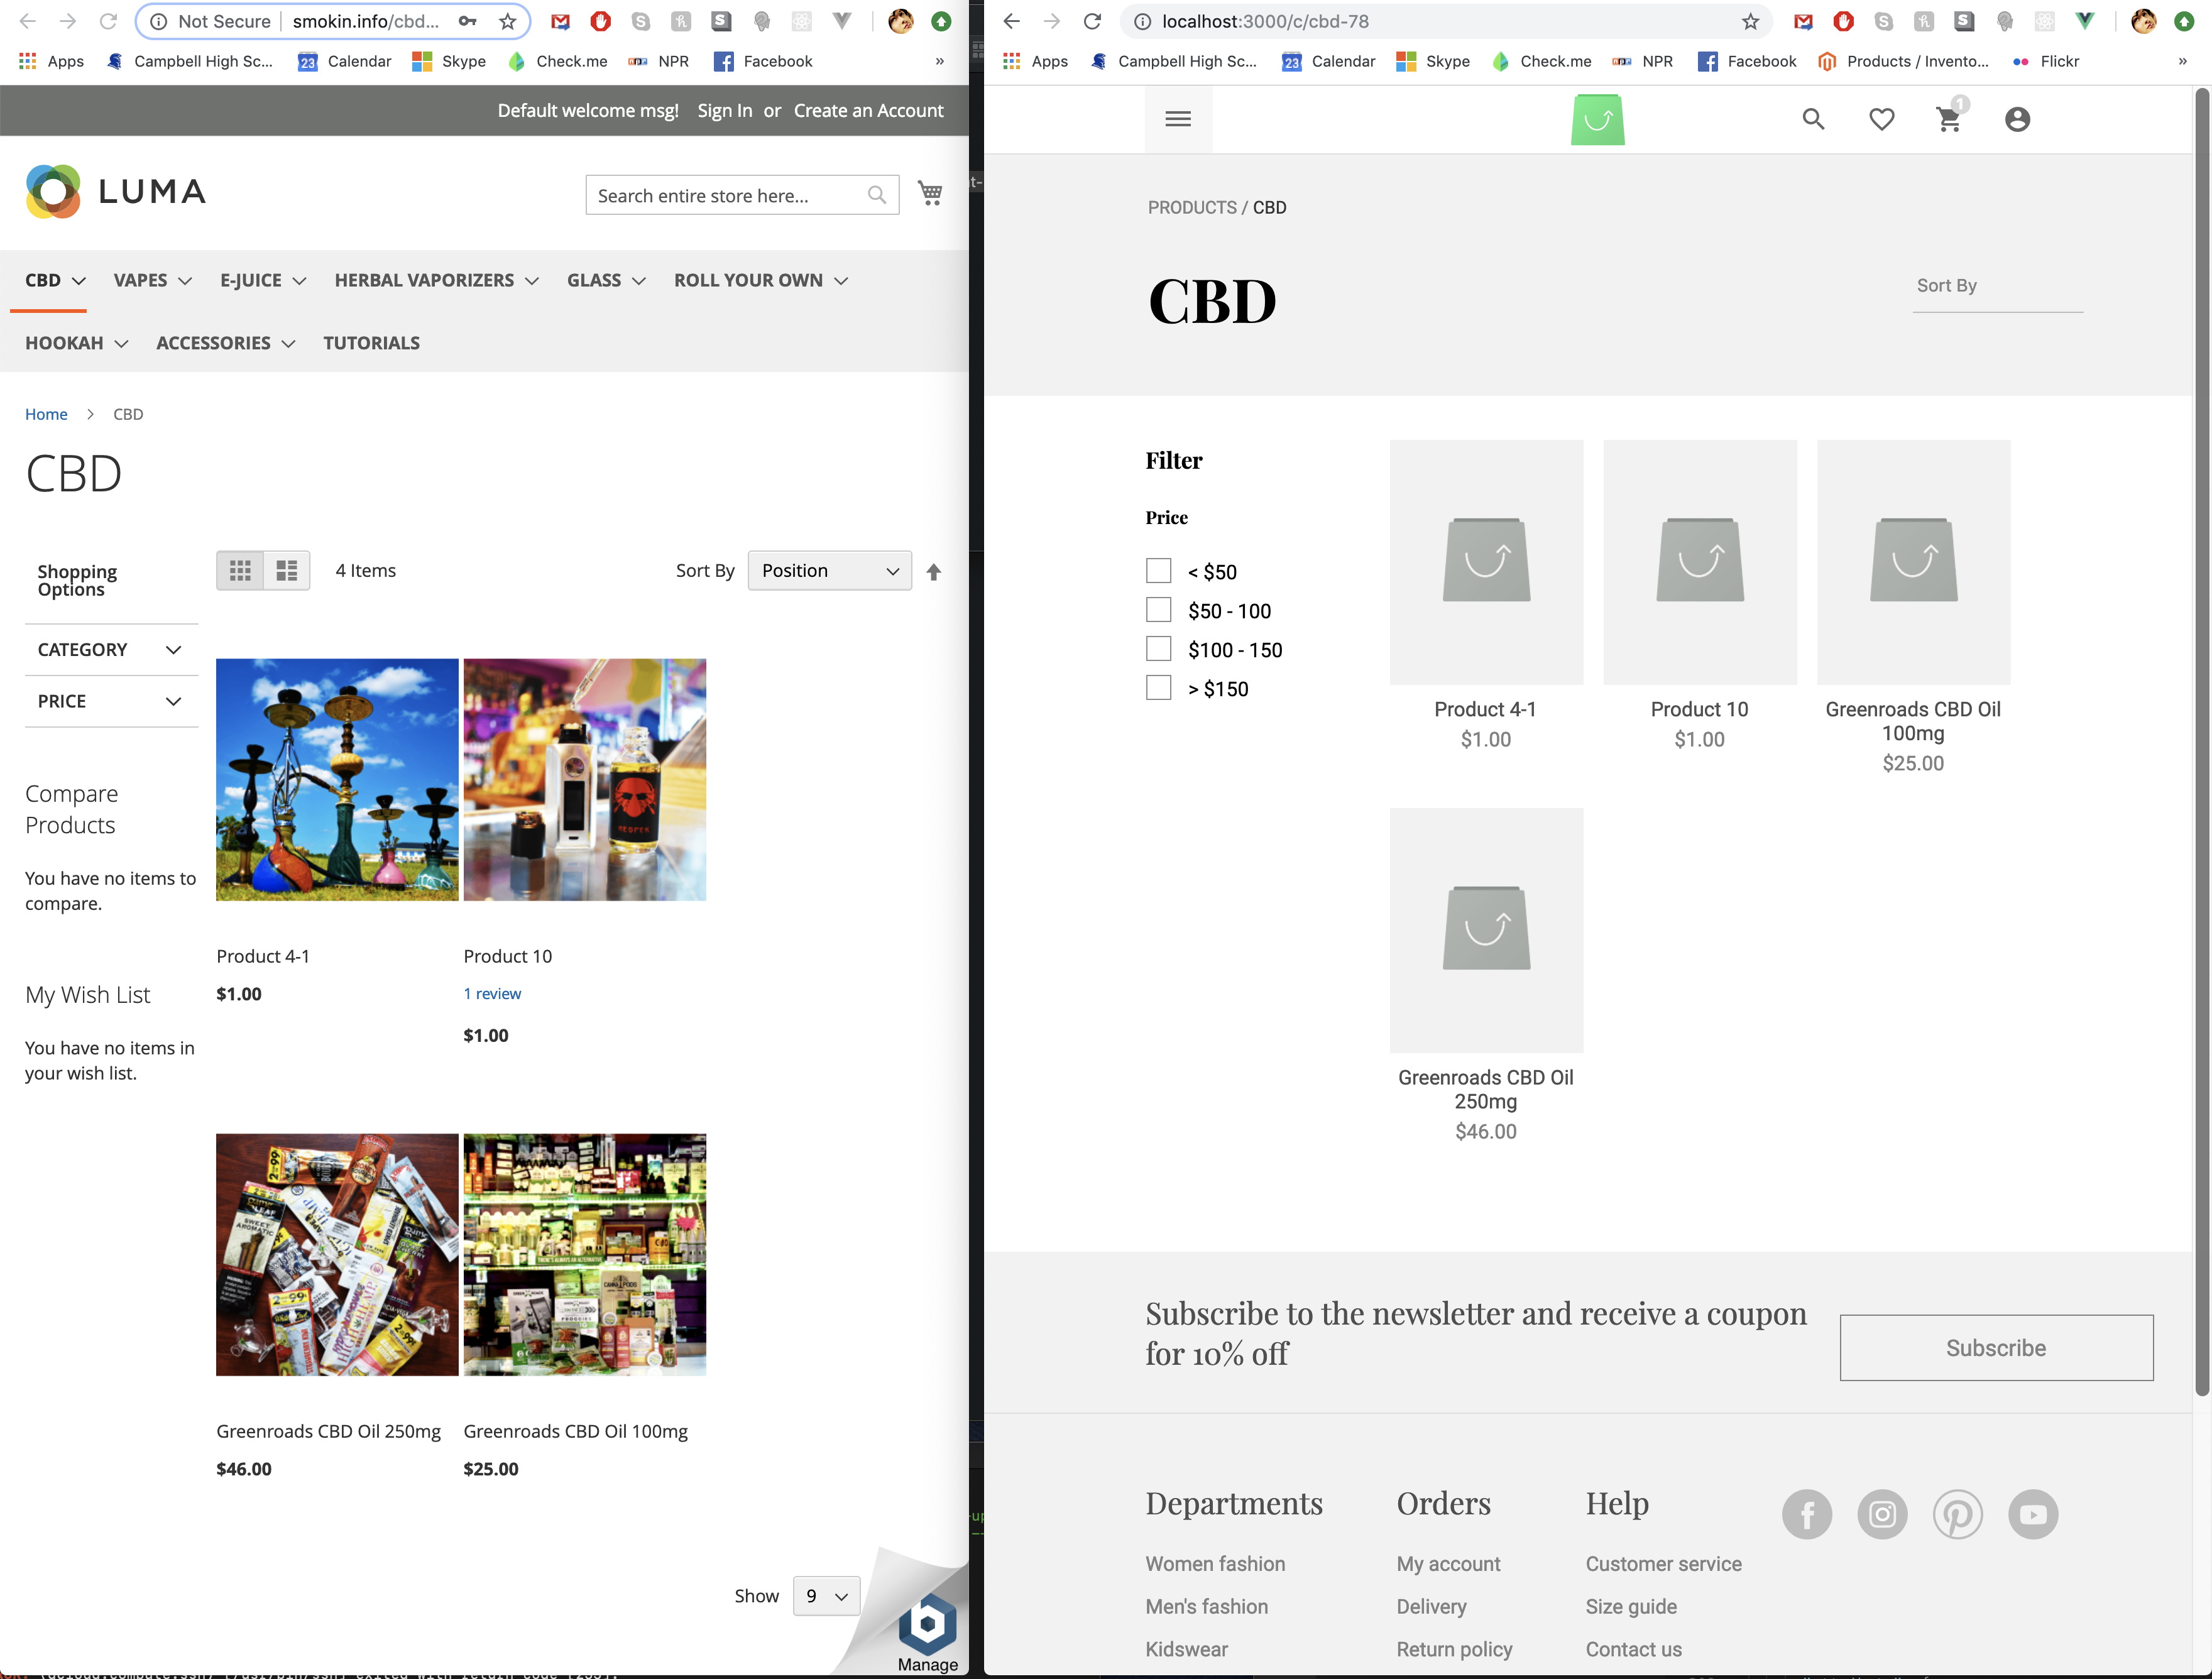 Product Images Not Displaying - Get Help - Vue Storefront forum